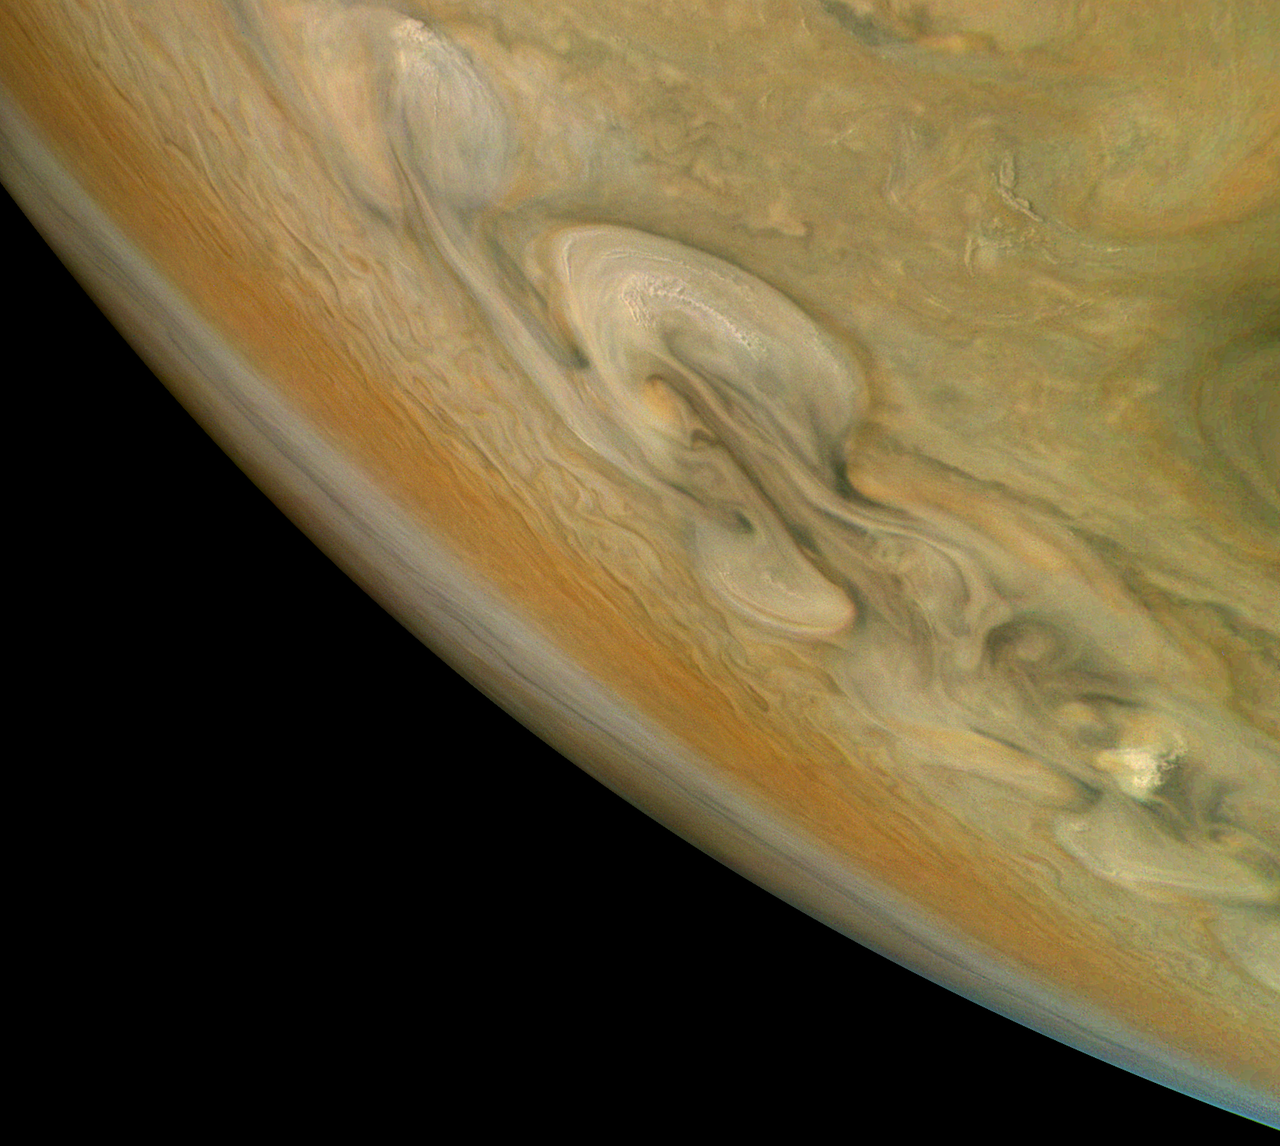 Jupiter's colorful, swirling clouds.